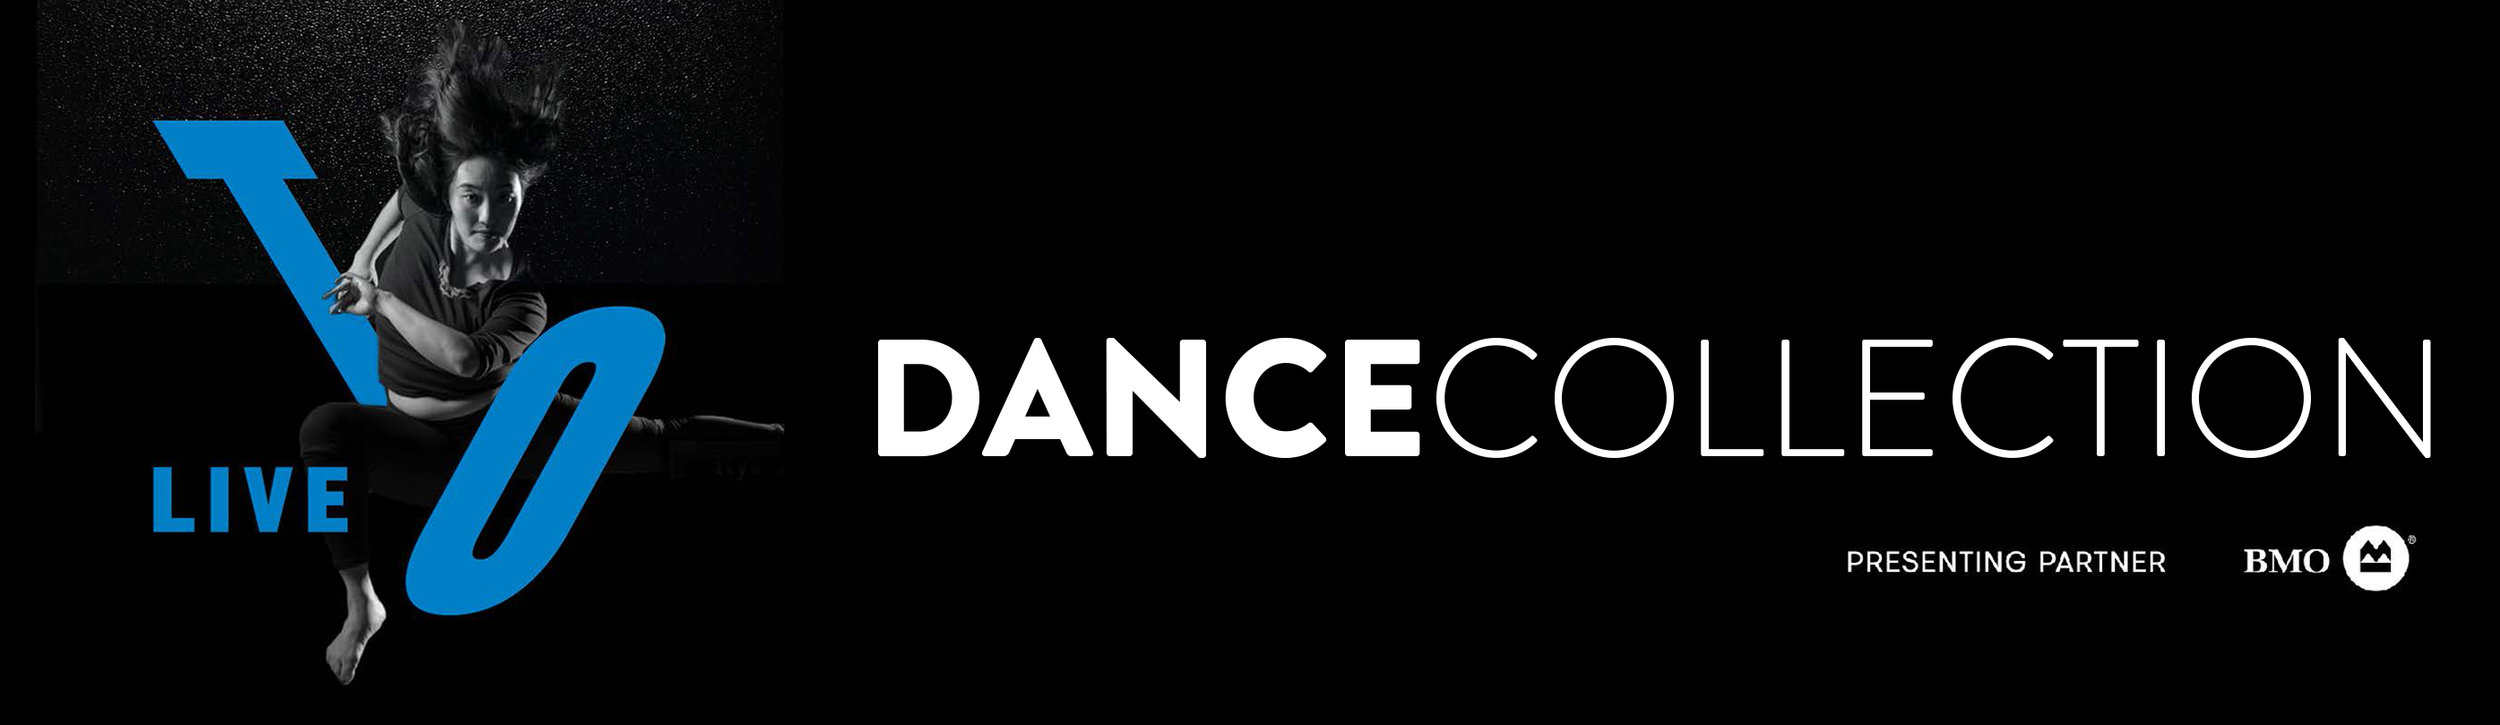 dancecollection.jpg